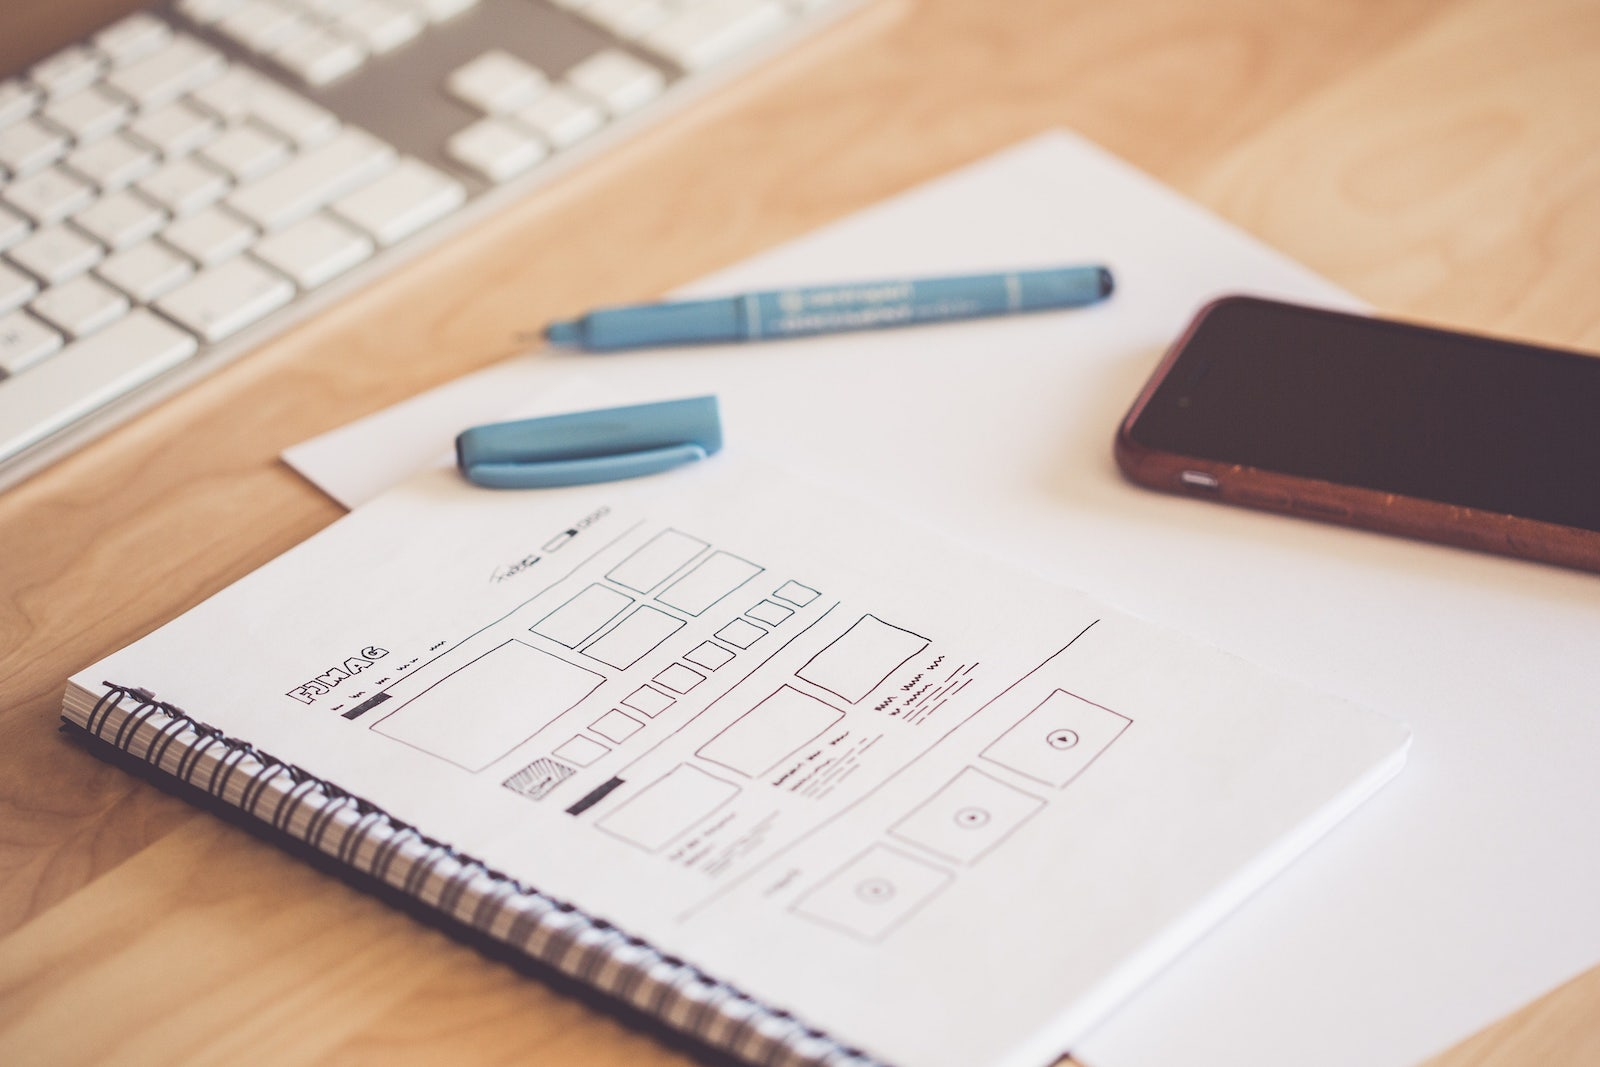 a notebook with a wireframe drawing of a website design